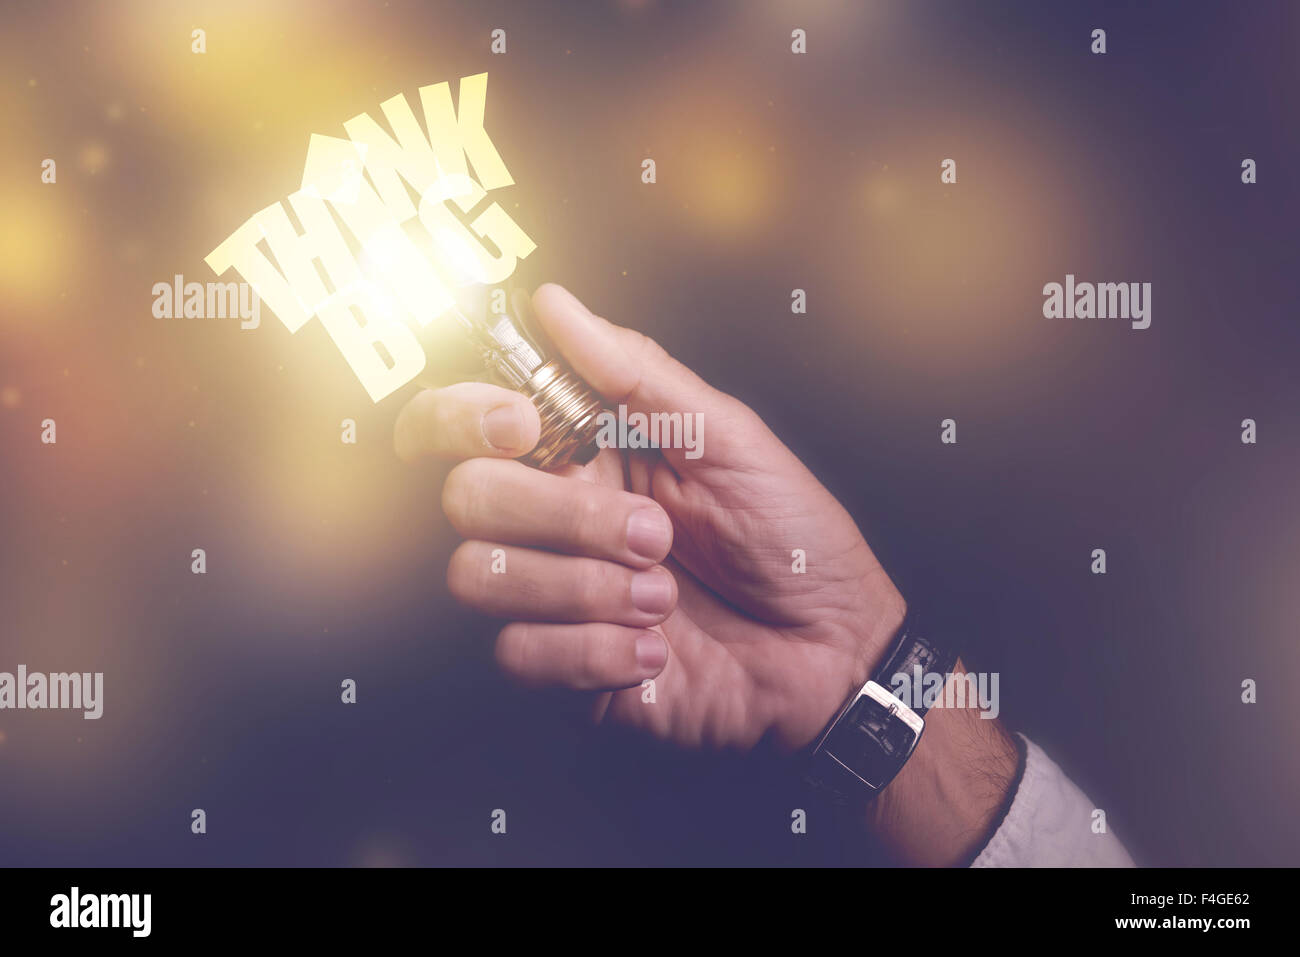 Think big business ideas visual metaphor, businessman with light bulb, retro toned image, selective focus. - Stock Image